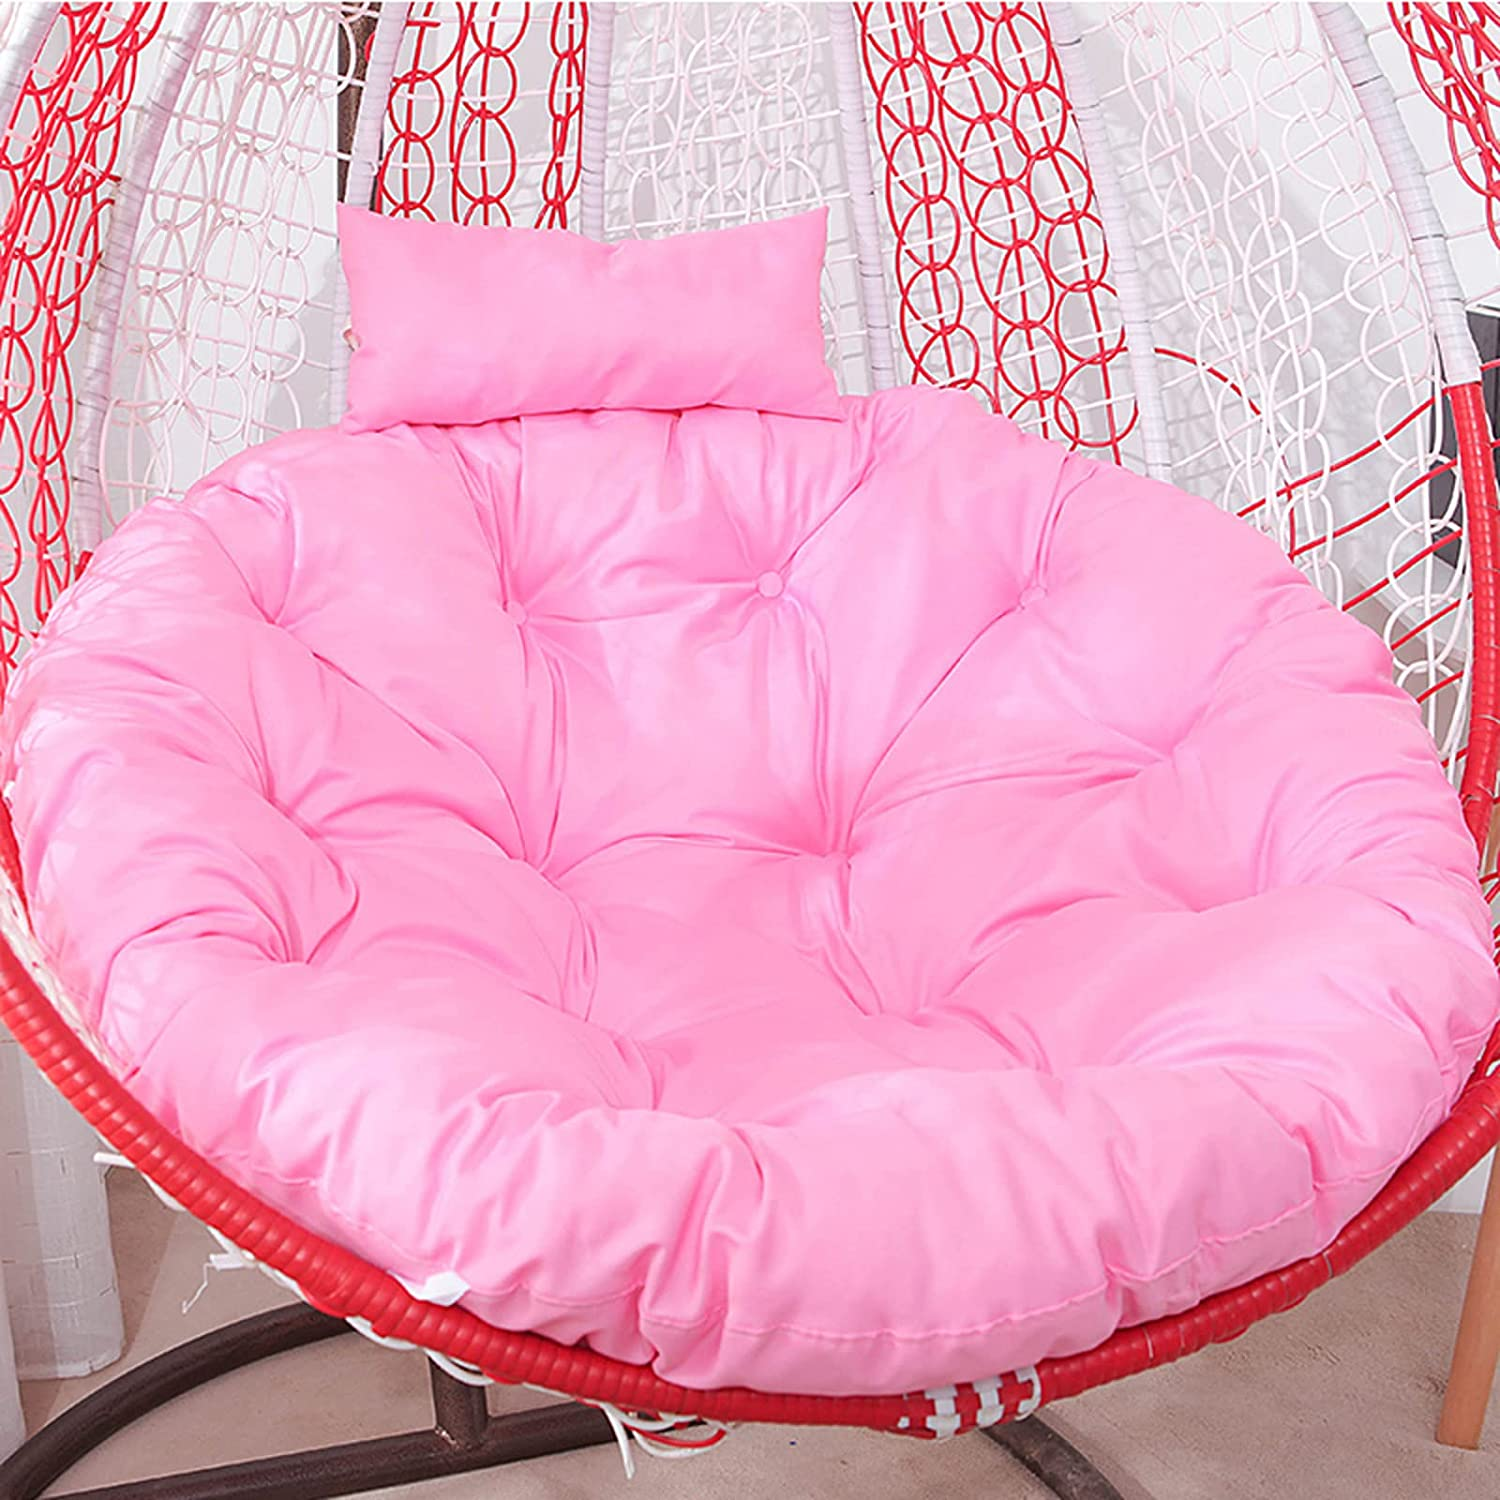 ZZZYZ Hanging Super special price Basket Swing Max 56% OFF Seat Cushion Wi Large Round Chair Pad